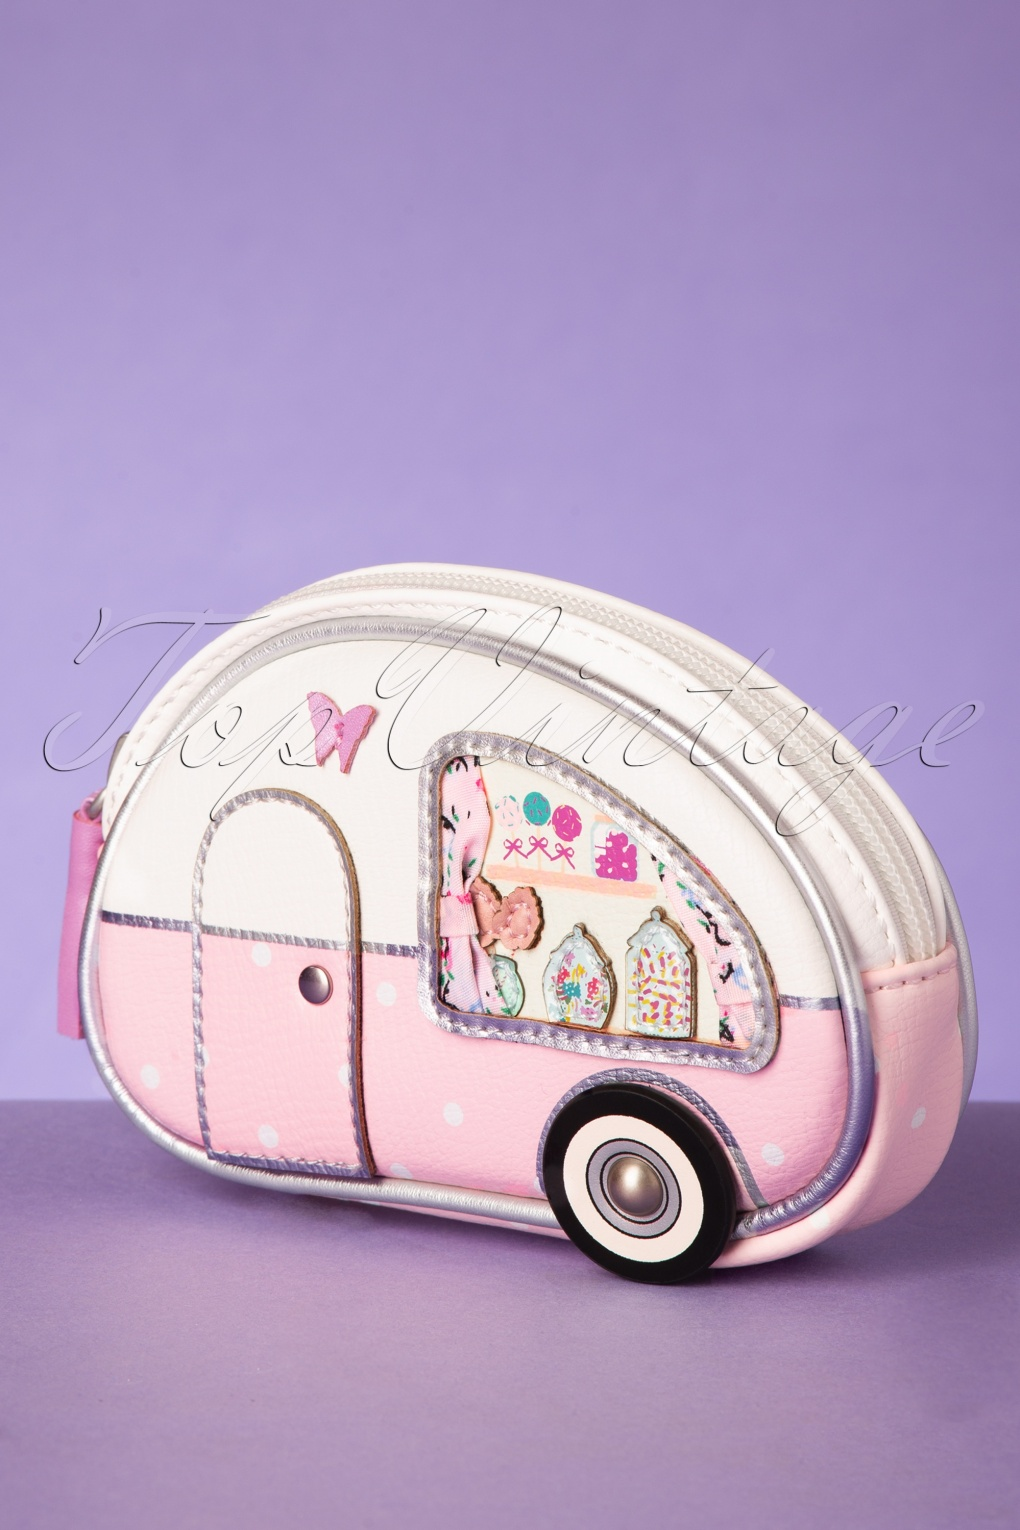 Vintage & Retro Handbags, Purses, Wallets, Bags 50s Sweetie Caravan Coin Purse in White and Pink �24.17 AT vintagedancer.com